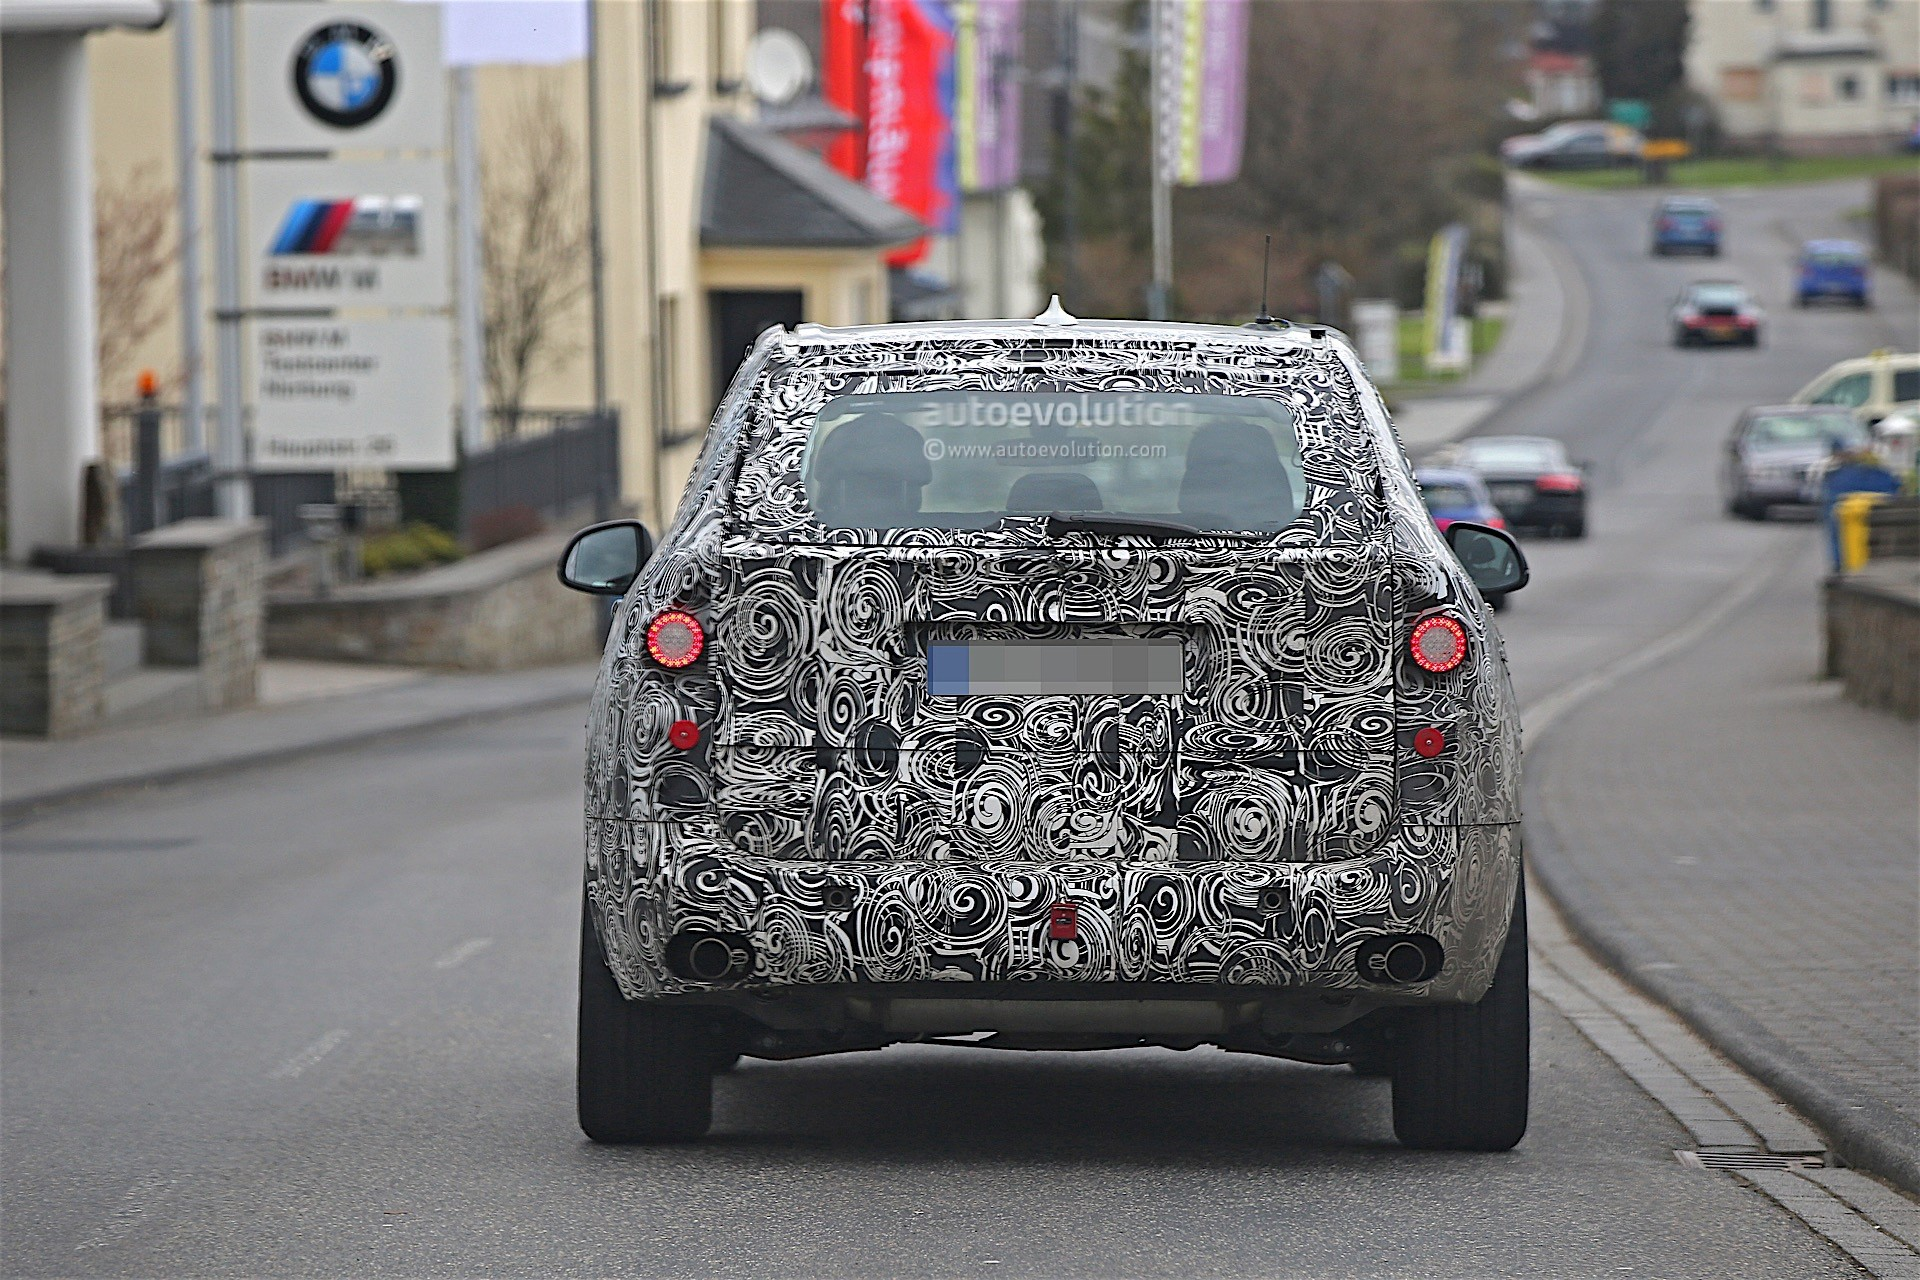 next-gen-2​019-bmw-x5​-laps-nurb​urgring-lo​oks-less-n​ose-heavy-​than-curre​nt-model_9